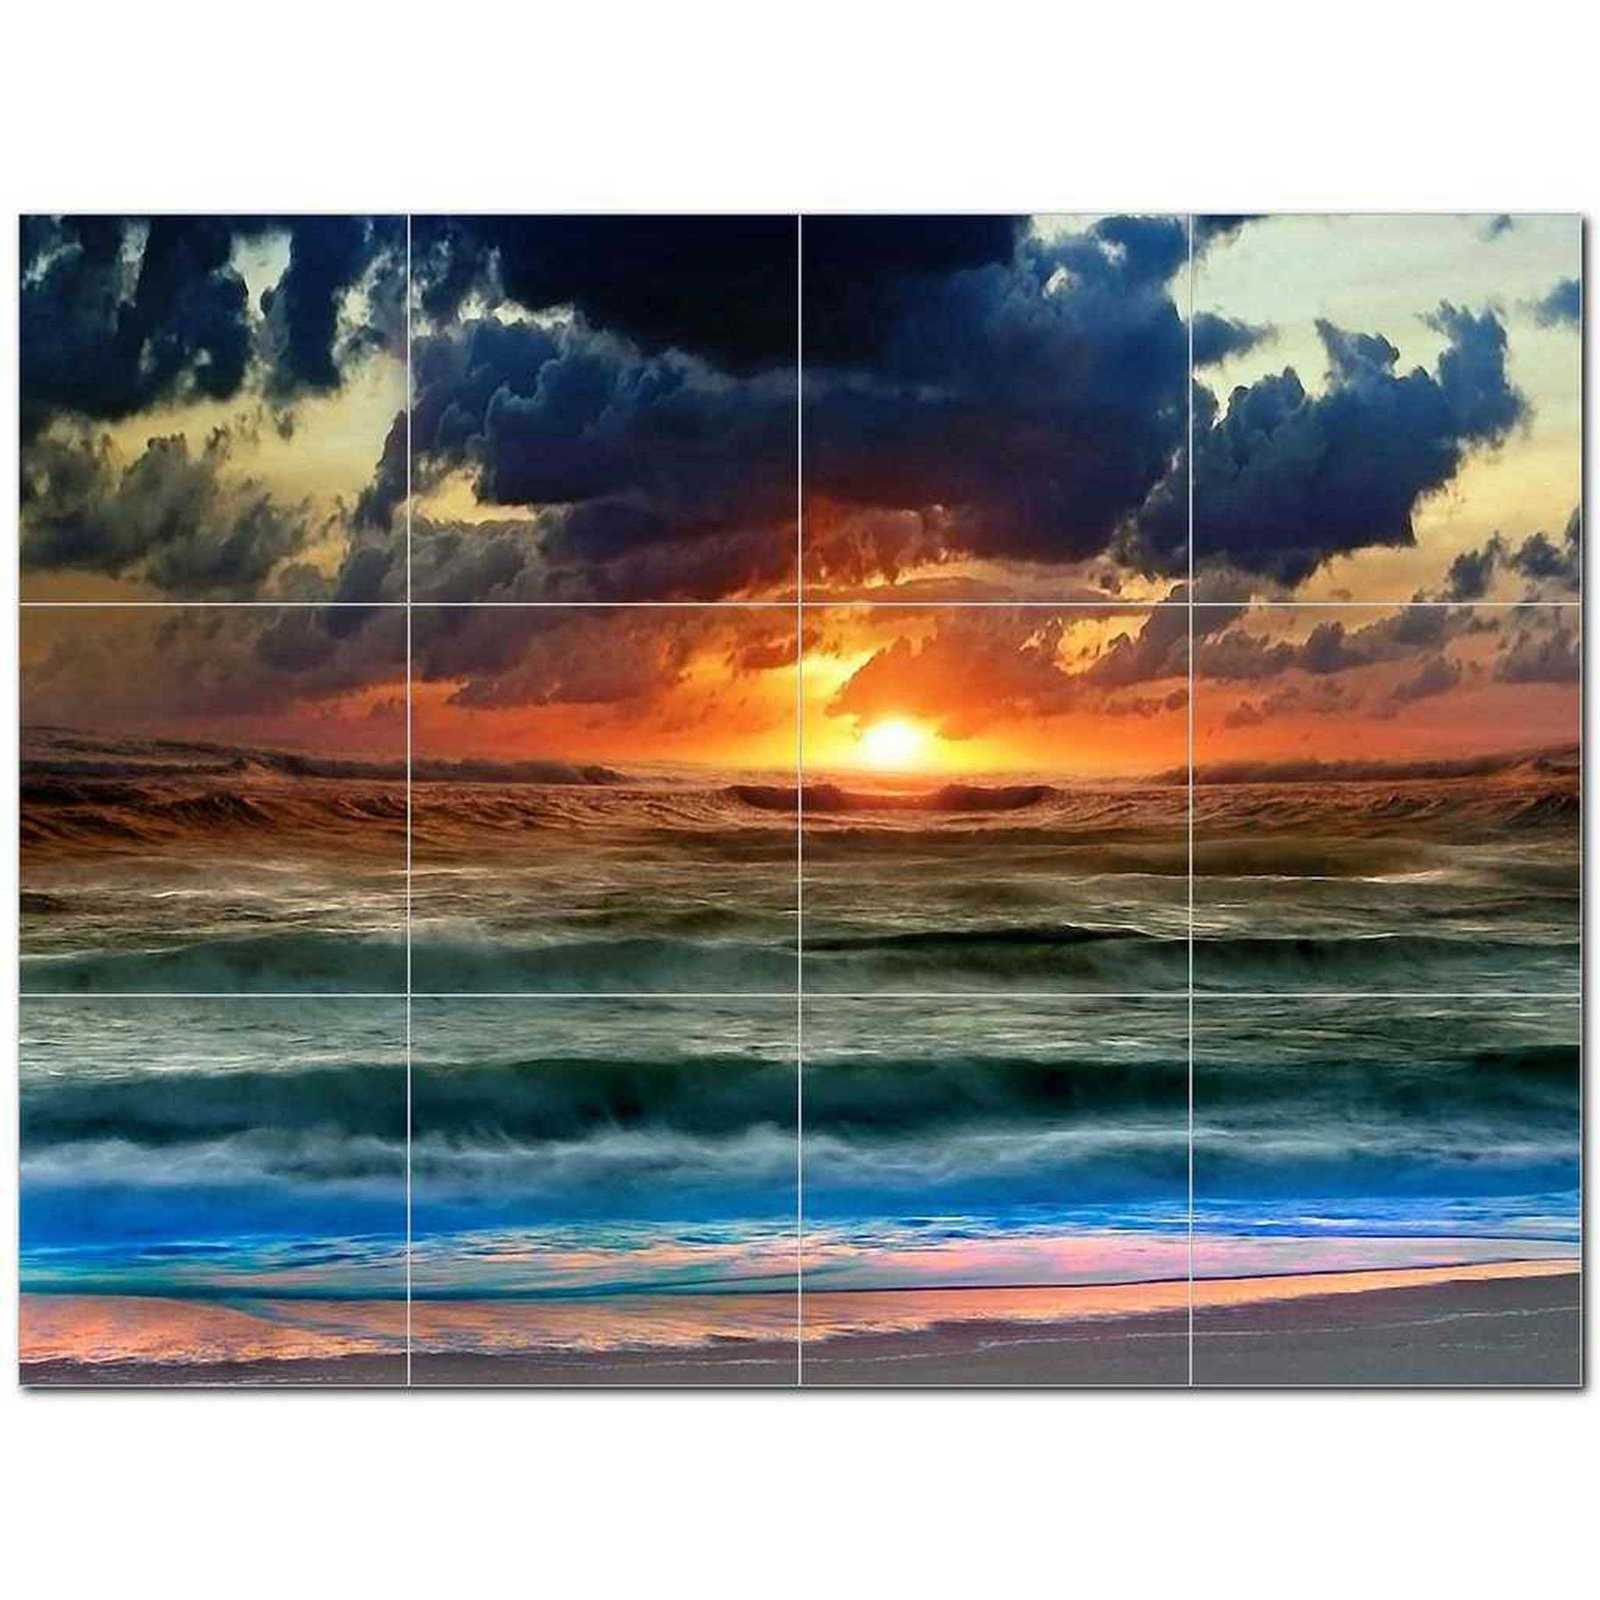 Primary image for Sunset Photo Ceramic Tile Mural Kitchen Backsplash Bathroom Shower BAZ405922